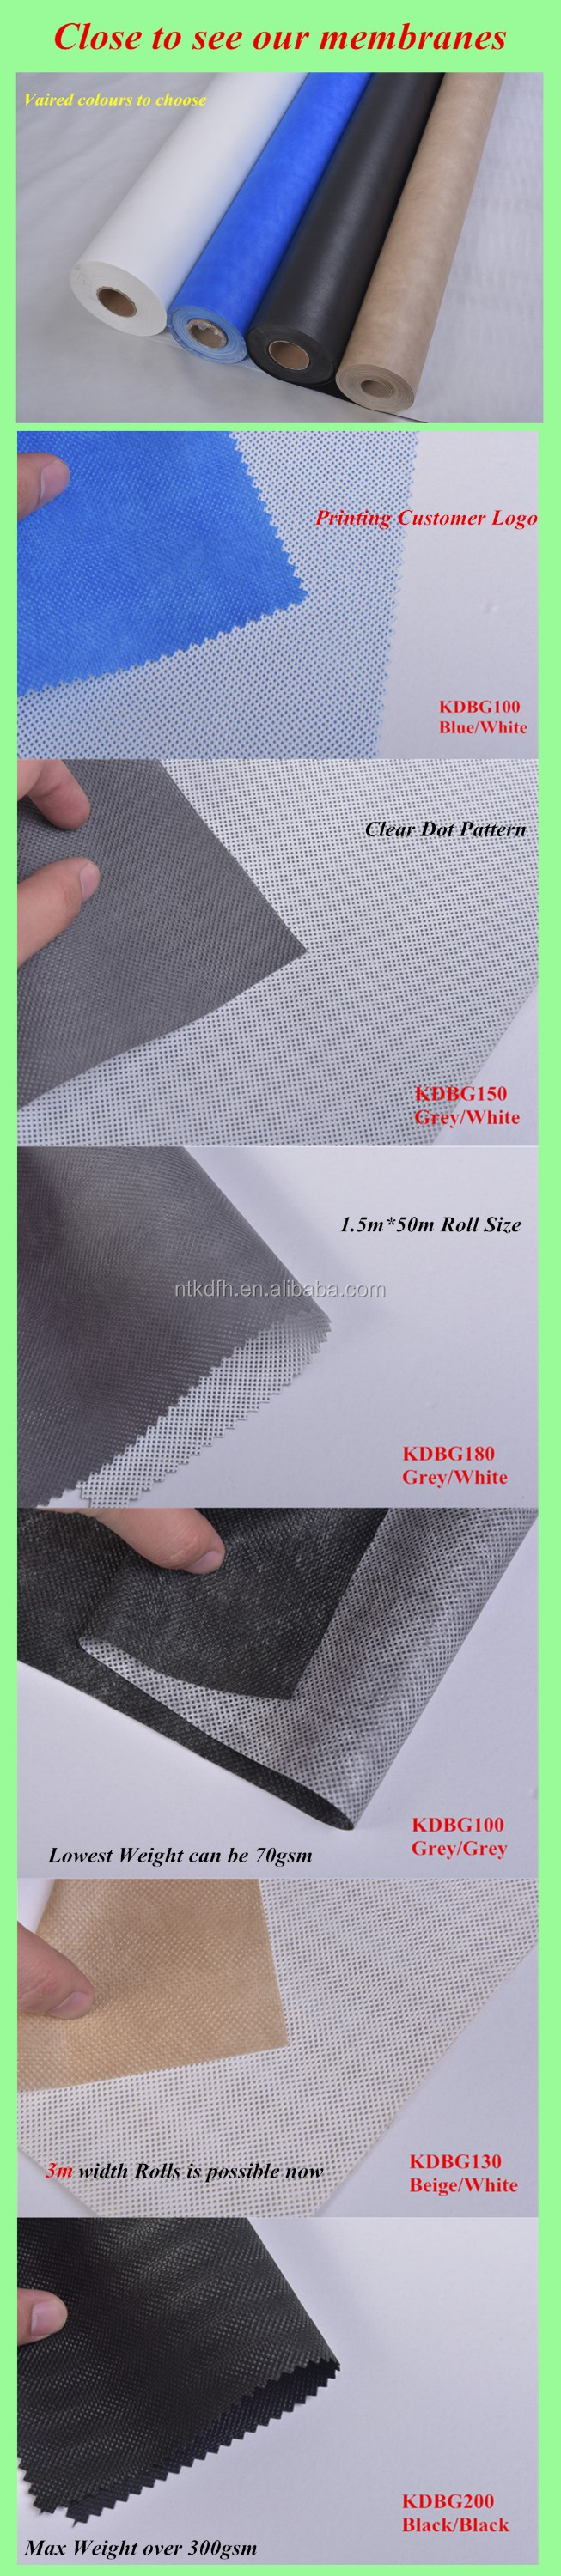 Waterproof Moisture Permeable Breathable Membrane for Roofing Underlay